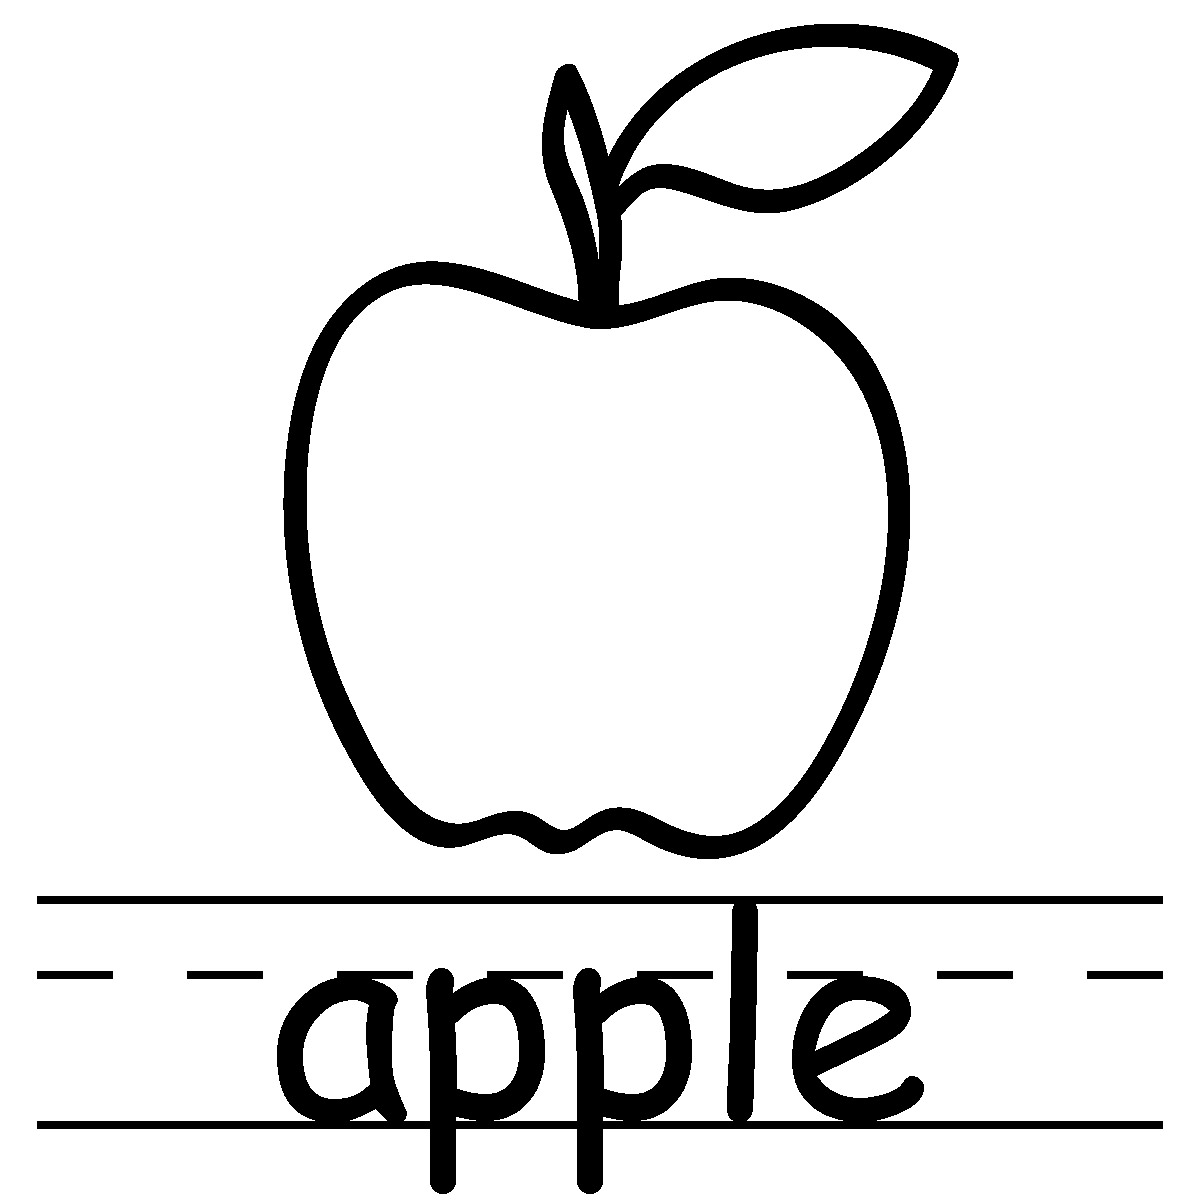 Apple tree coloring pages preschoolers for Apple coloring pages